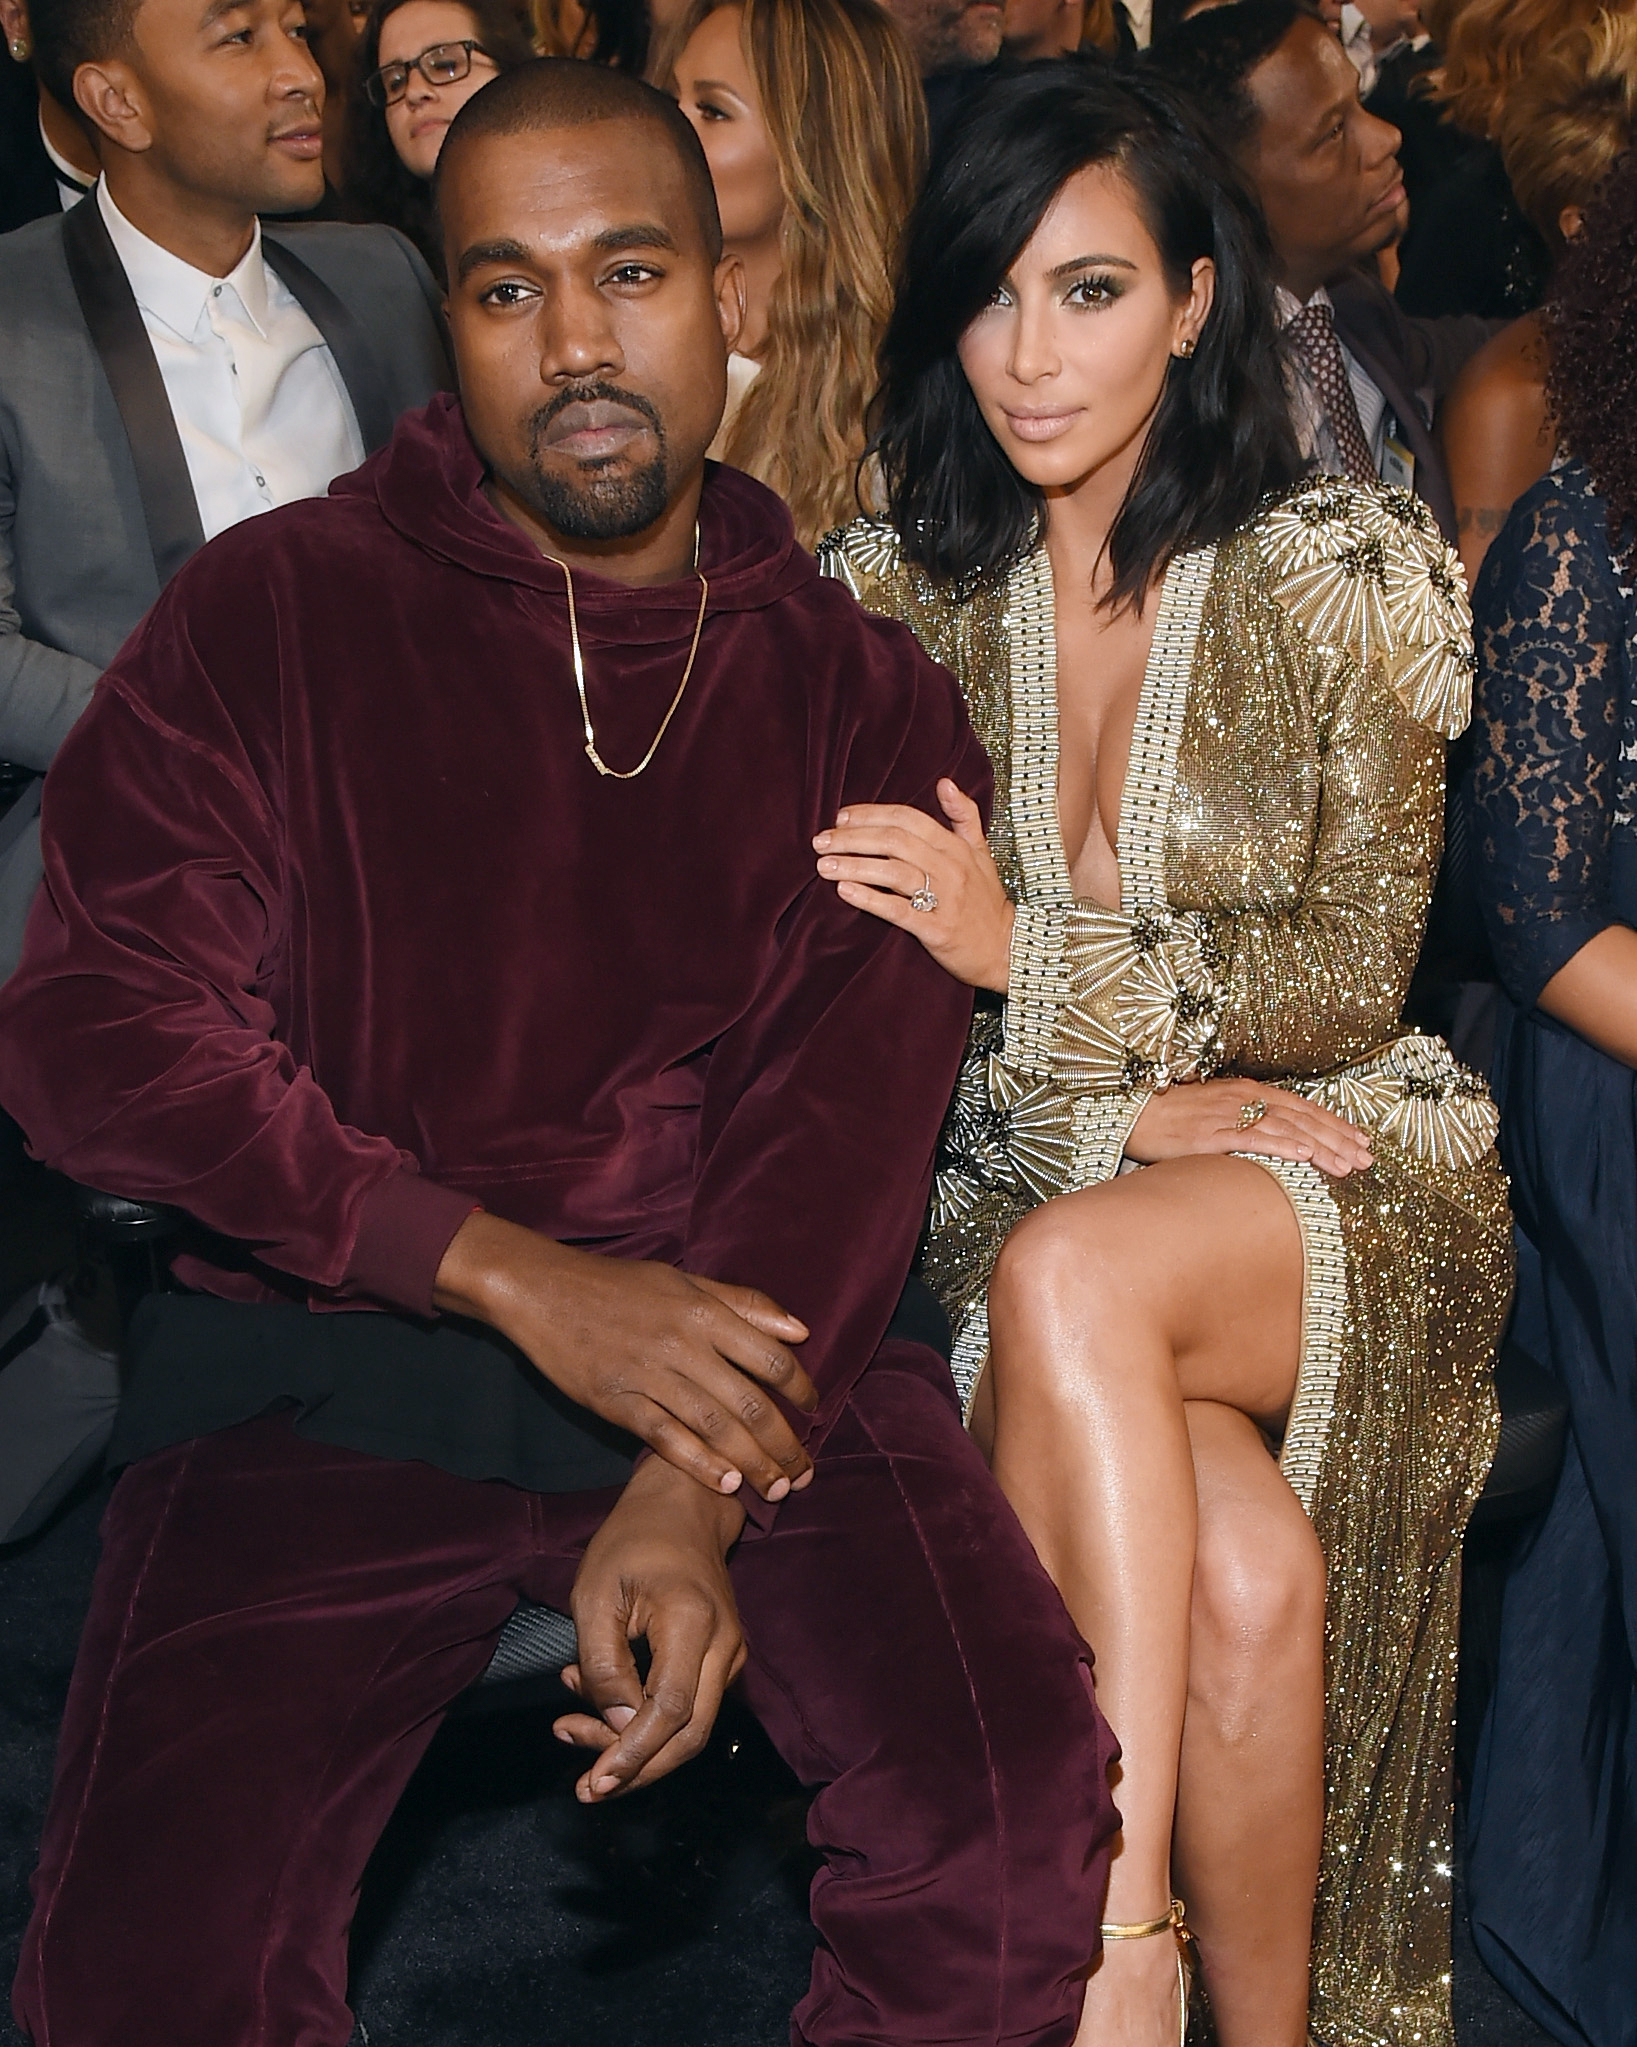 celebrity-engagement-rings-kim-kardashian-kanye-west-1015.jpg